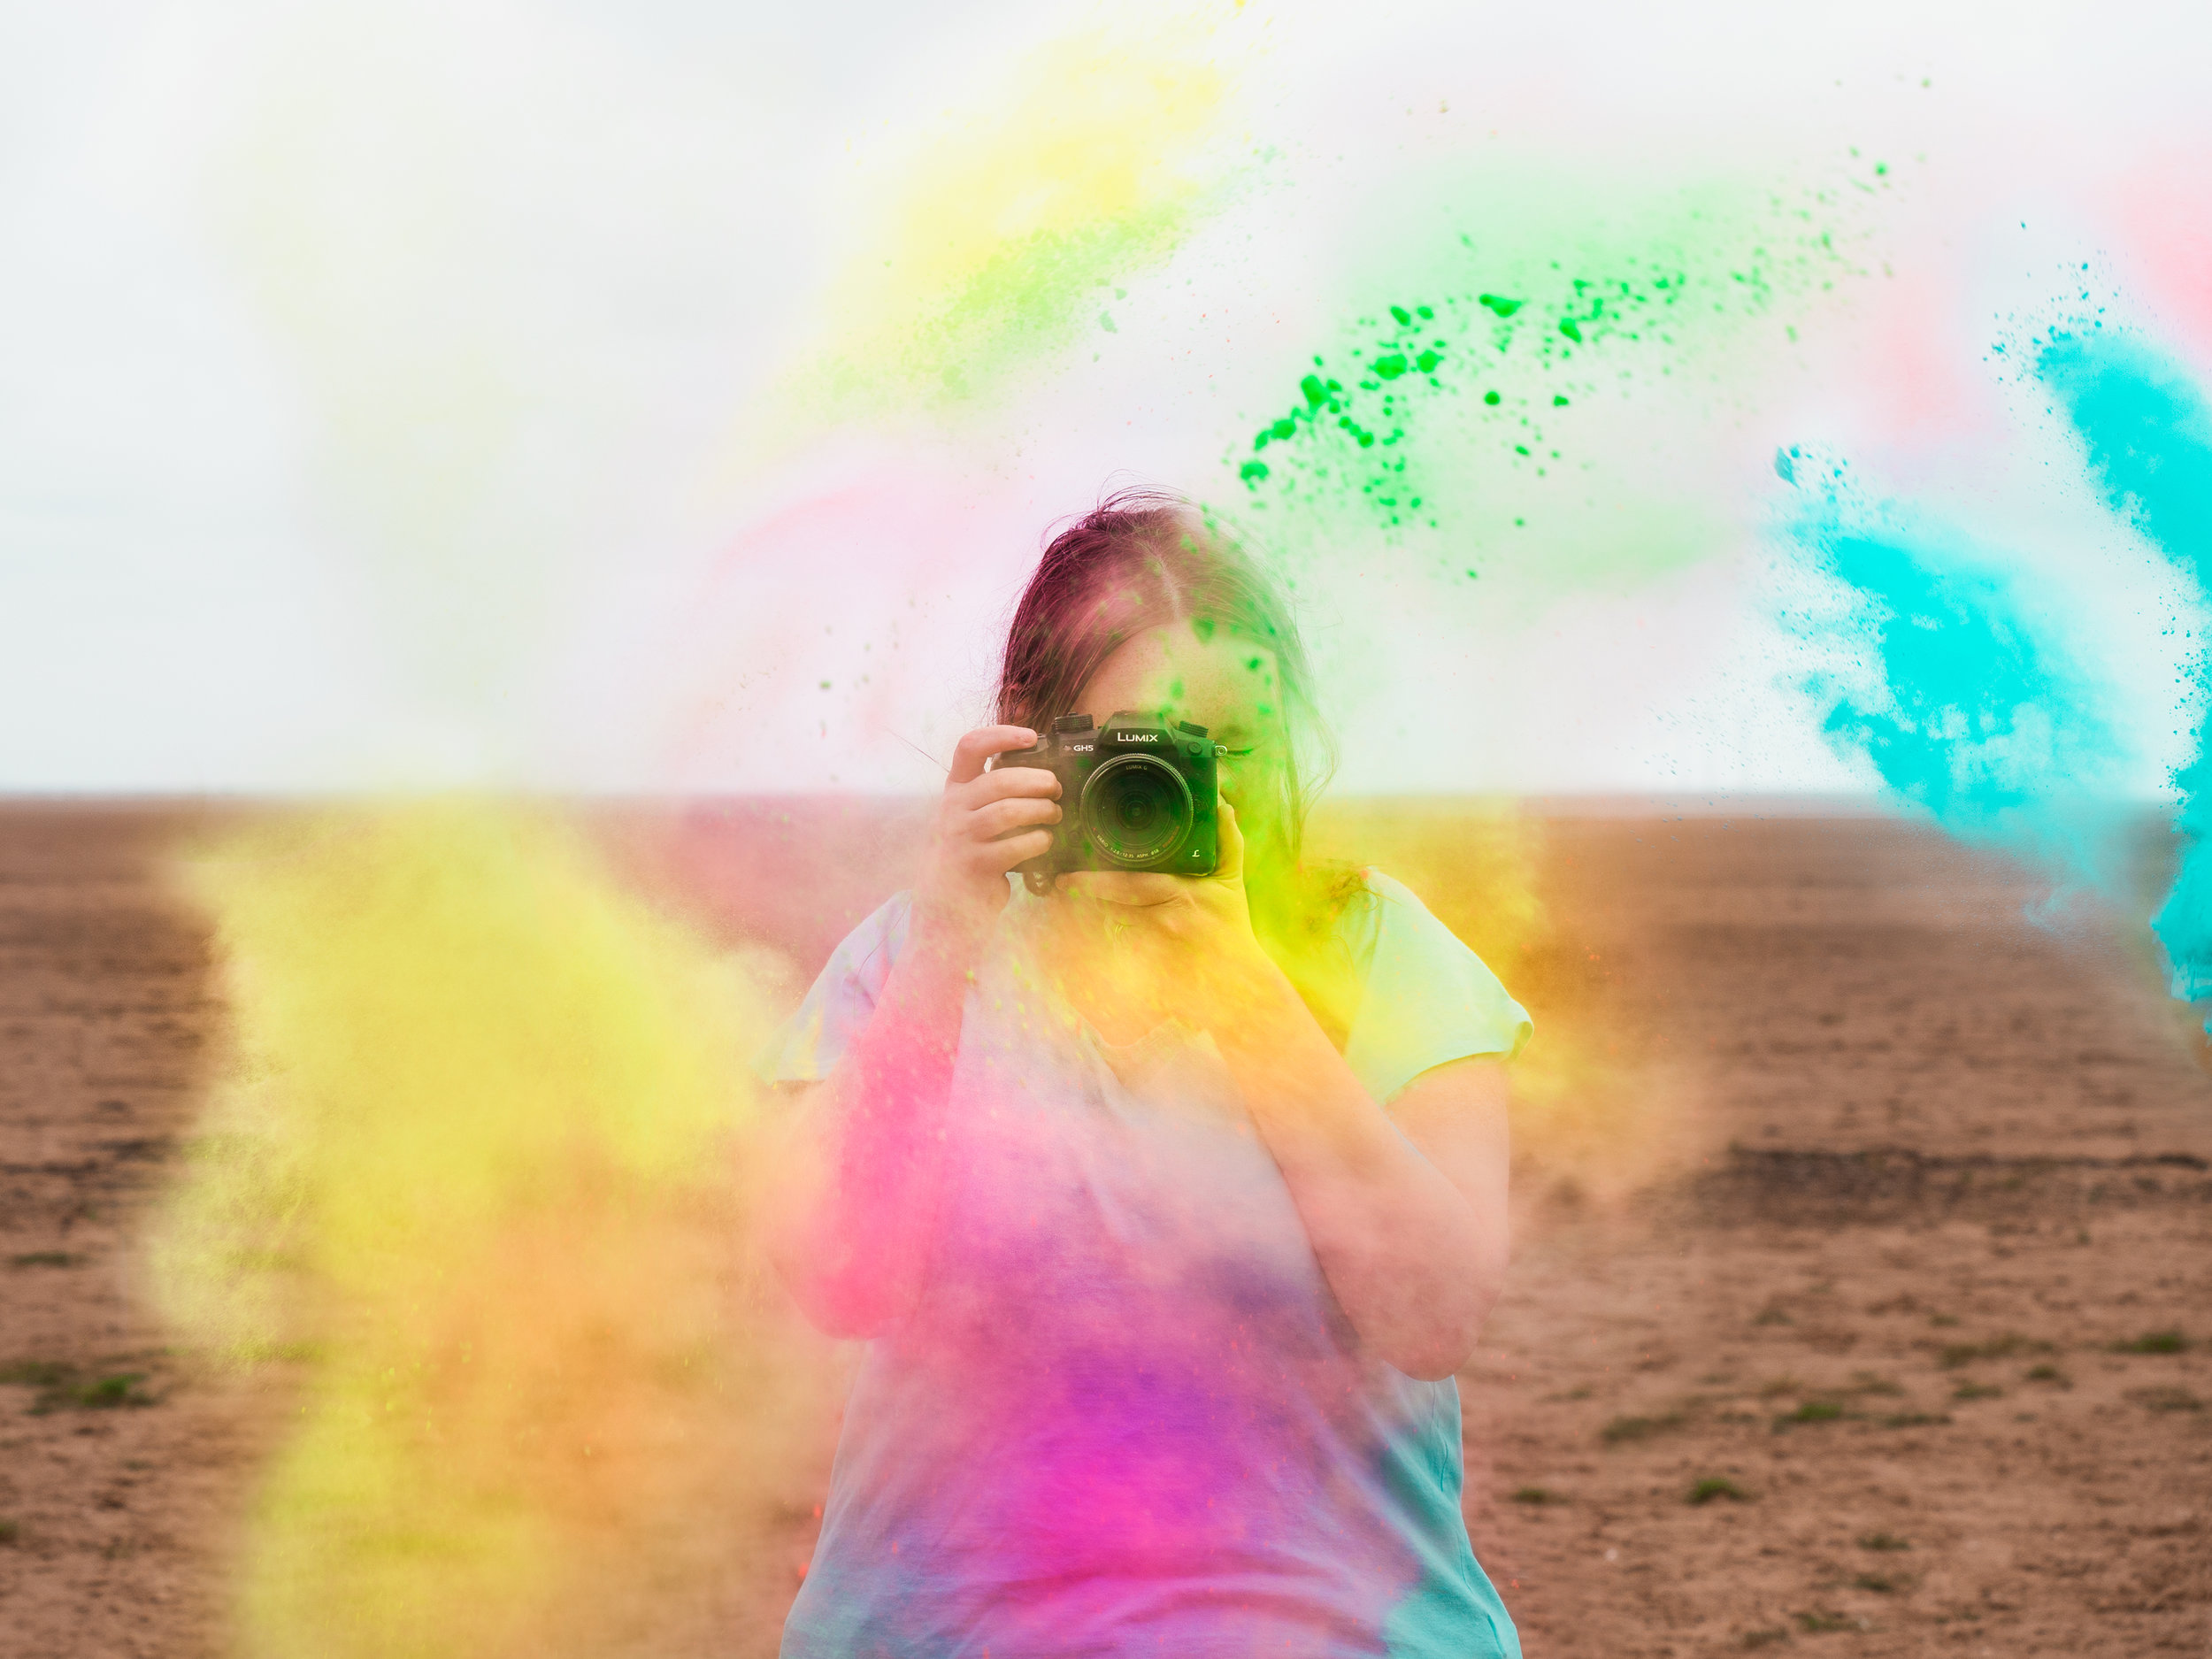 paint powder photography ideas